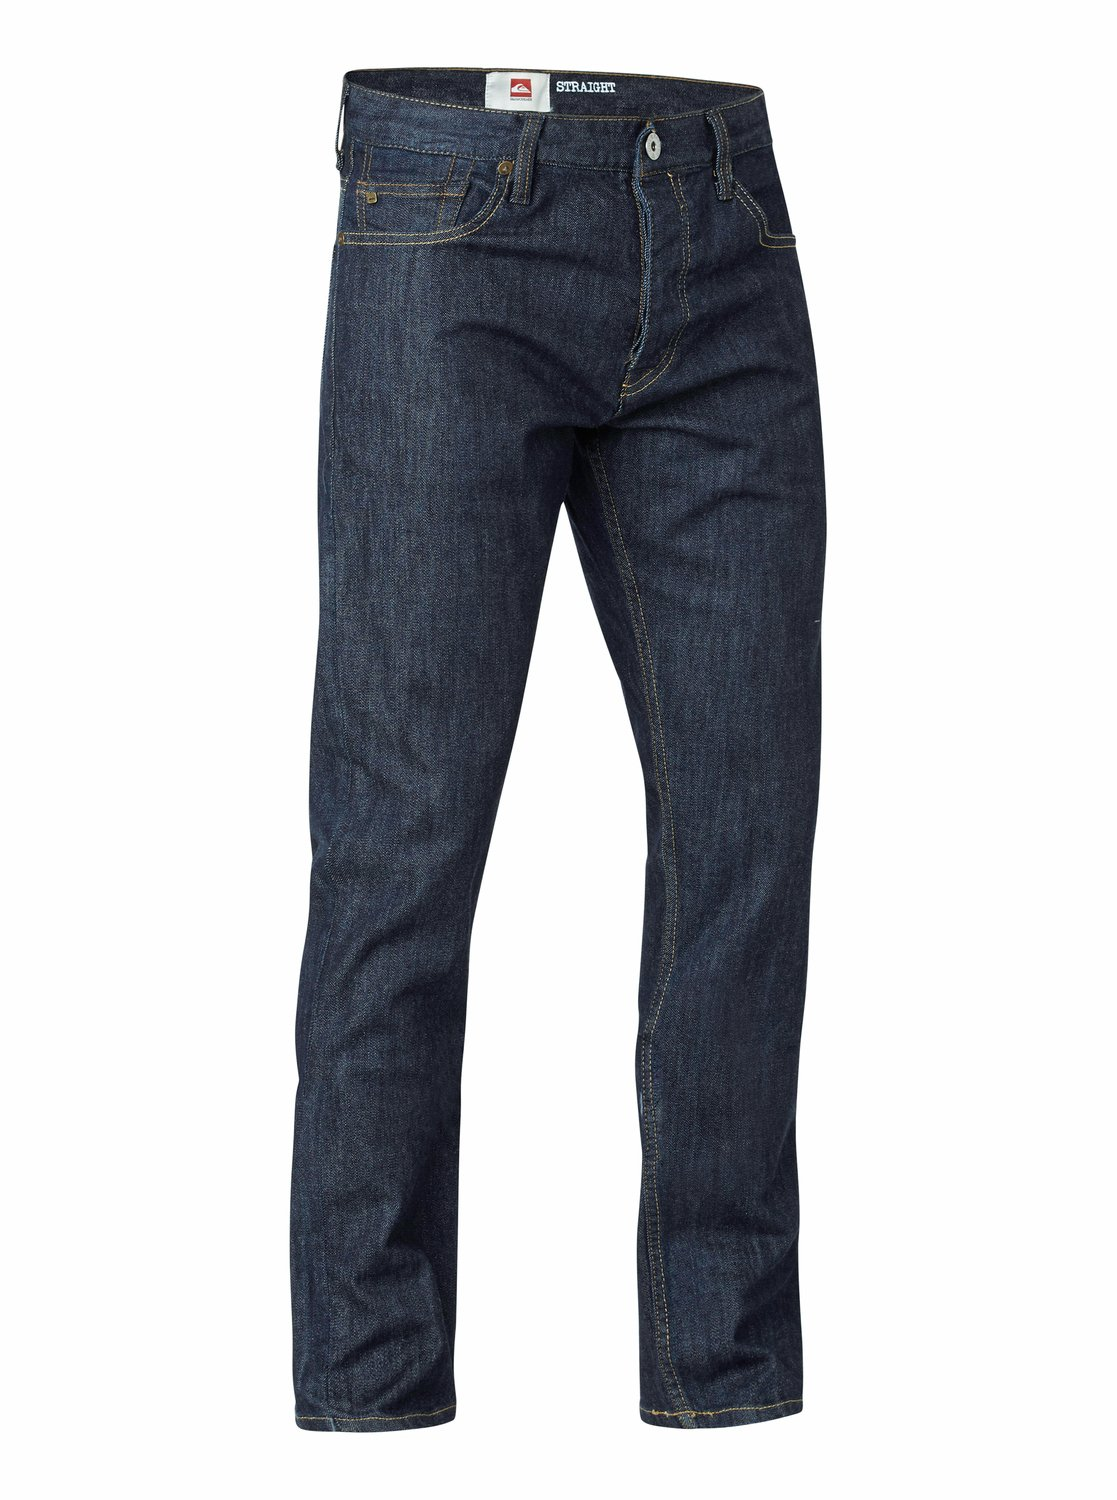 kracker brushed rinse straight tapered fit jeans 32 inseam eqydp03005 quiksilver. Black Bedroom Furniture Sets. Home Design Ideas